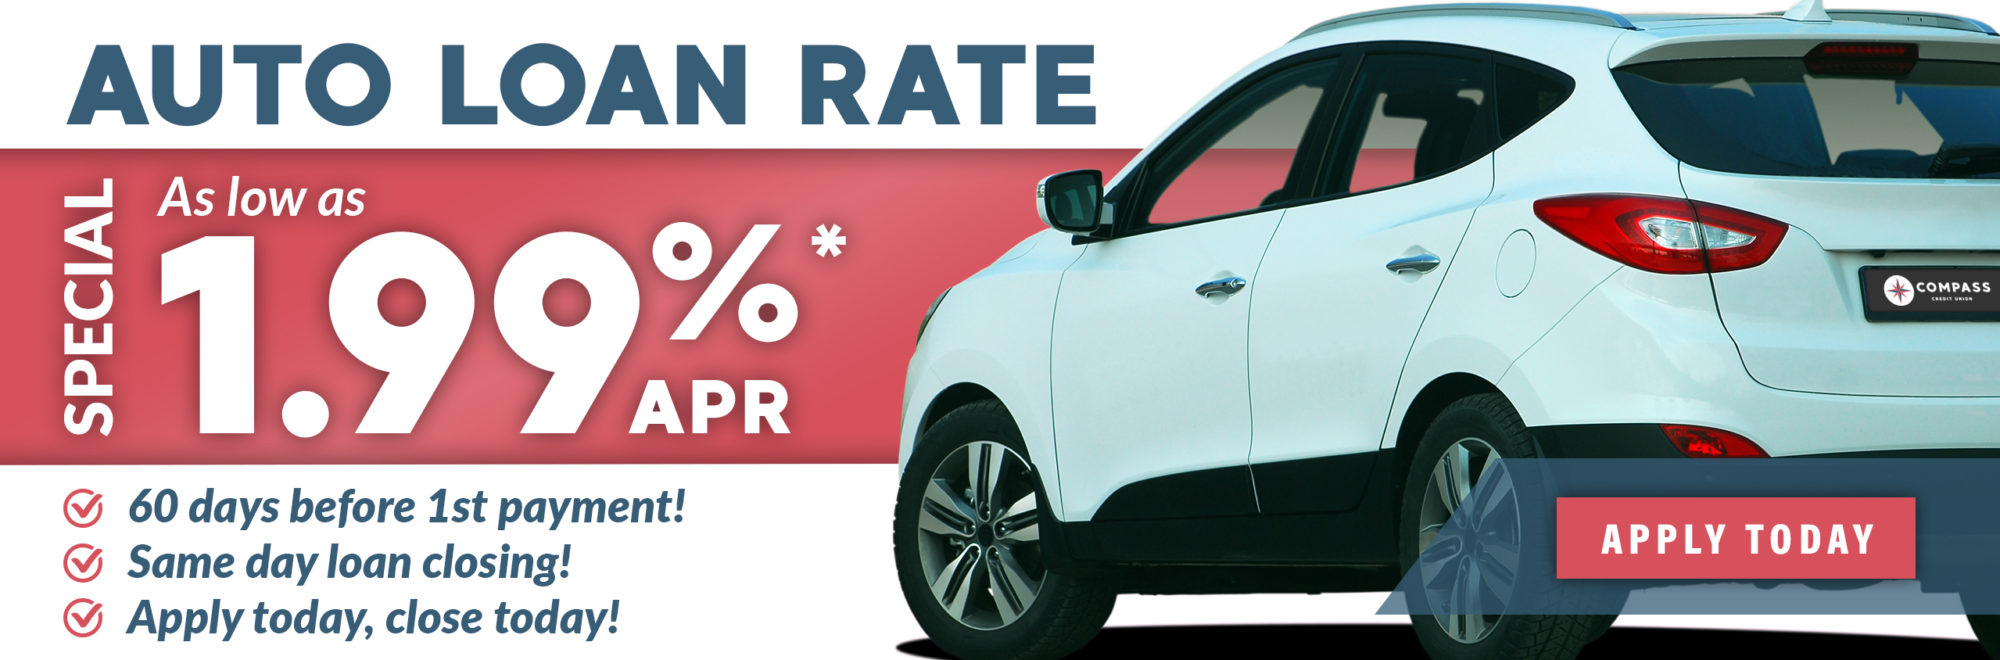 Auto Loan Rate Special